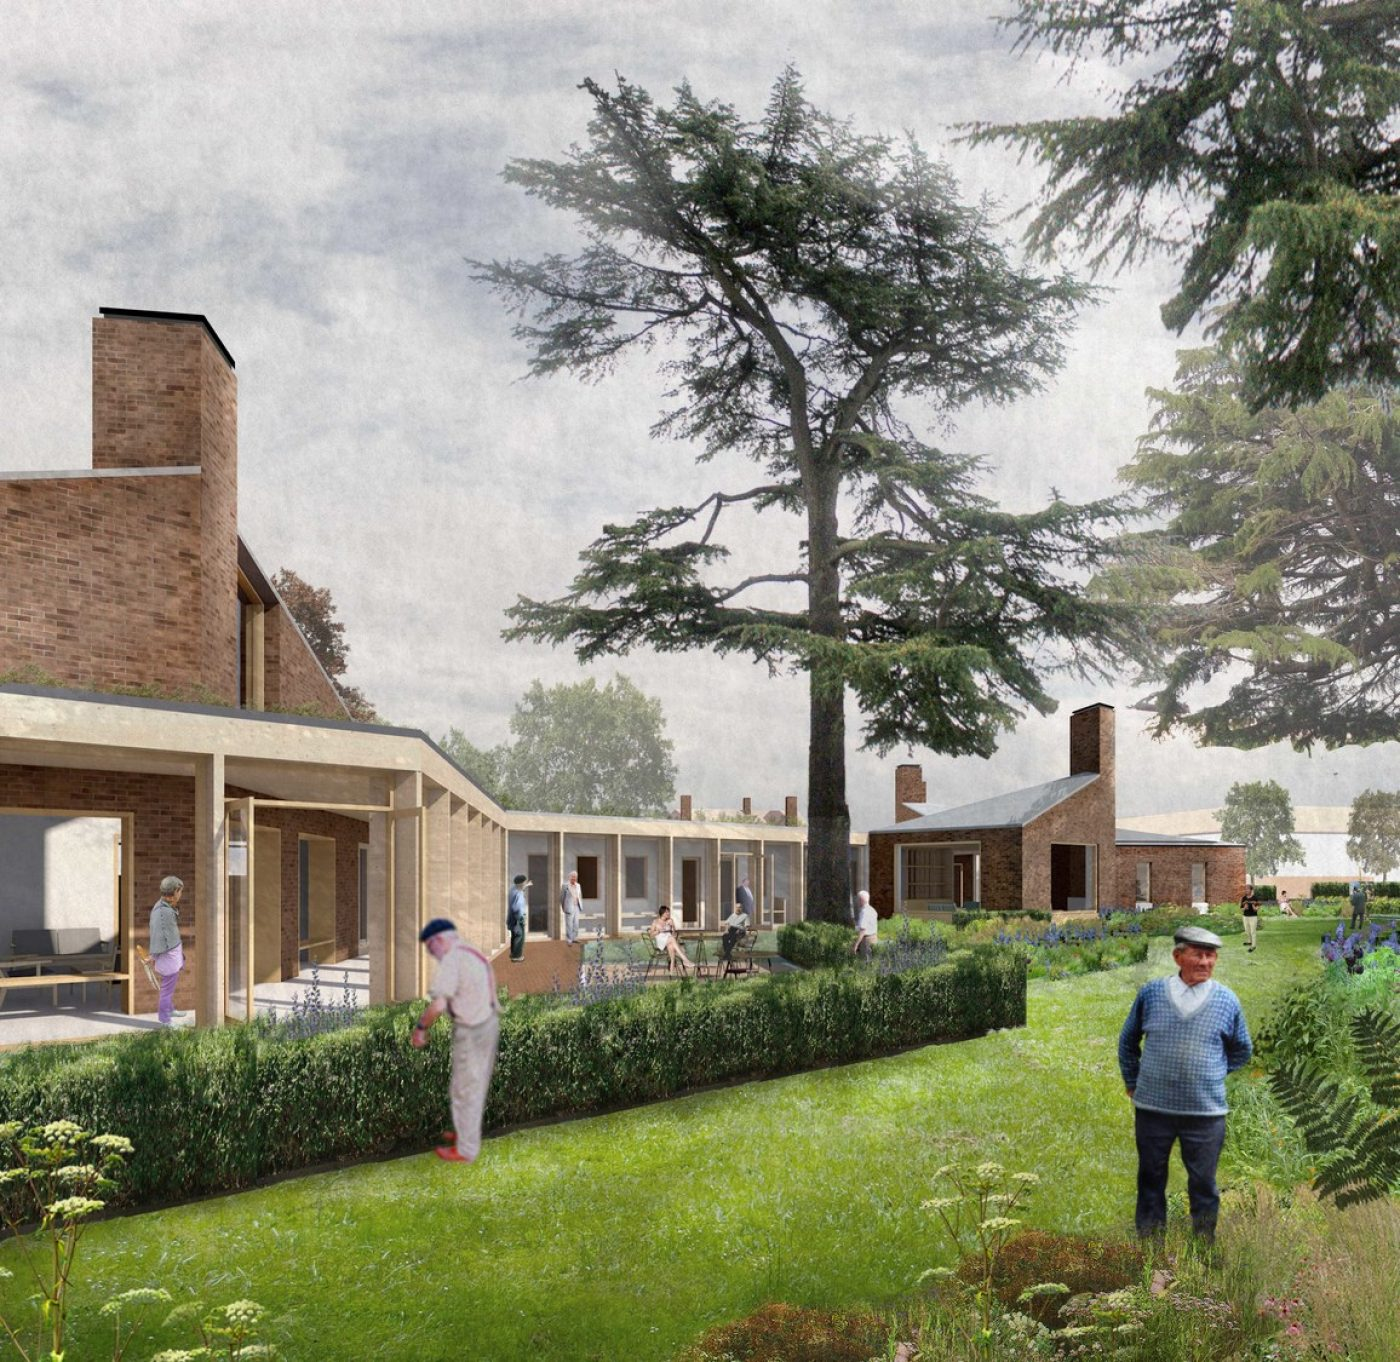 171109 Morden College Planning Consent